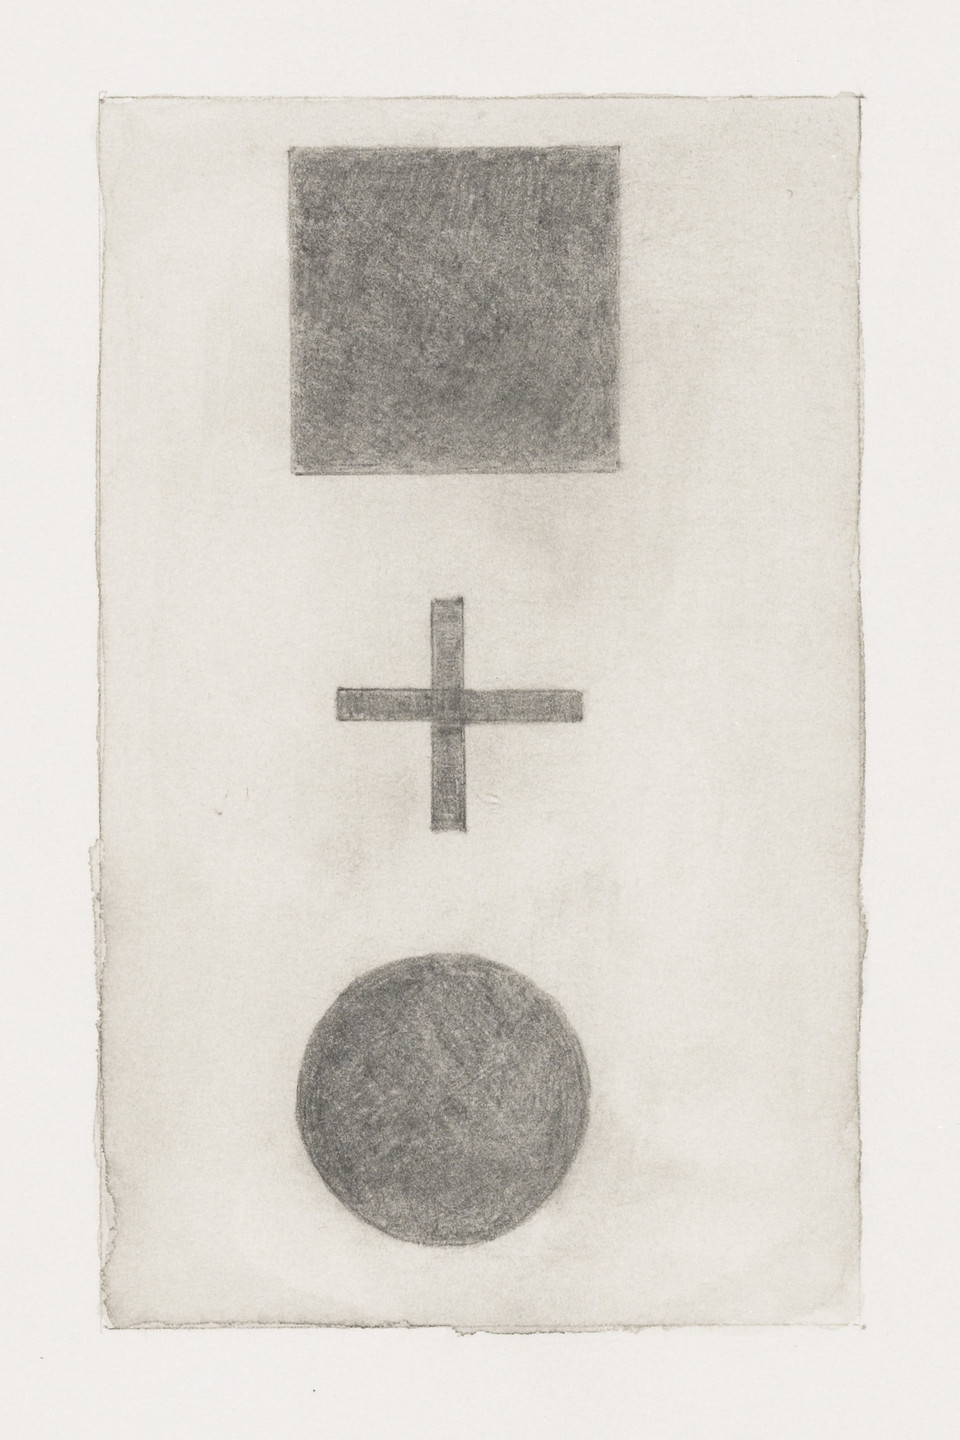 Sherrie Levine. Untitled (After Malevich and Schiele), from the 1917 exhibition, Nature Morte Gallery, New York. 1984